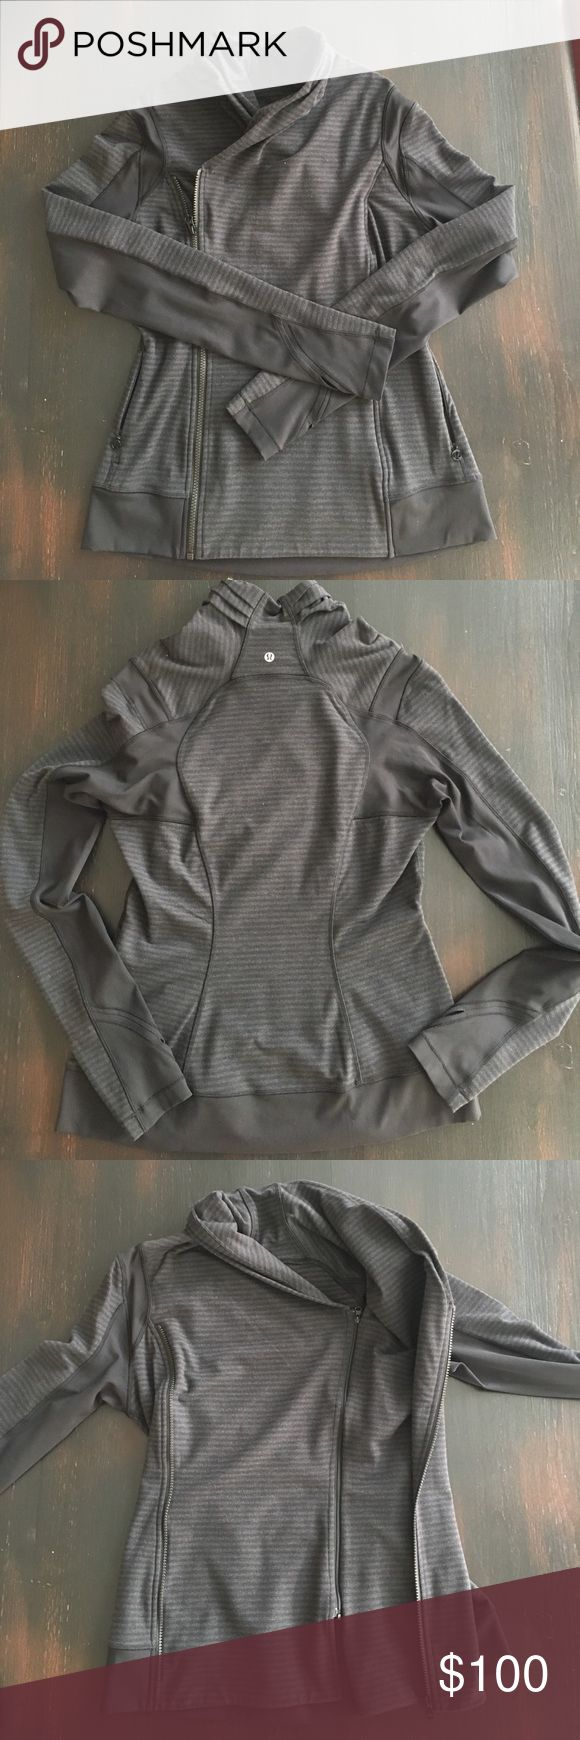 Lululemon Sweat Jacket BARELY WORN Lululemon charcoal/black stripe sweat jacket with two zippers, inside left and outside right. Size 10.  Mint condition, no rips, no tears, no stains, no discoloration. Can wear zipped like a double breasted coat or unzipped draped open. Non smoking house. lululemon athletica Jackets & Coats